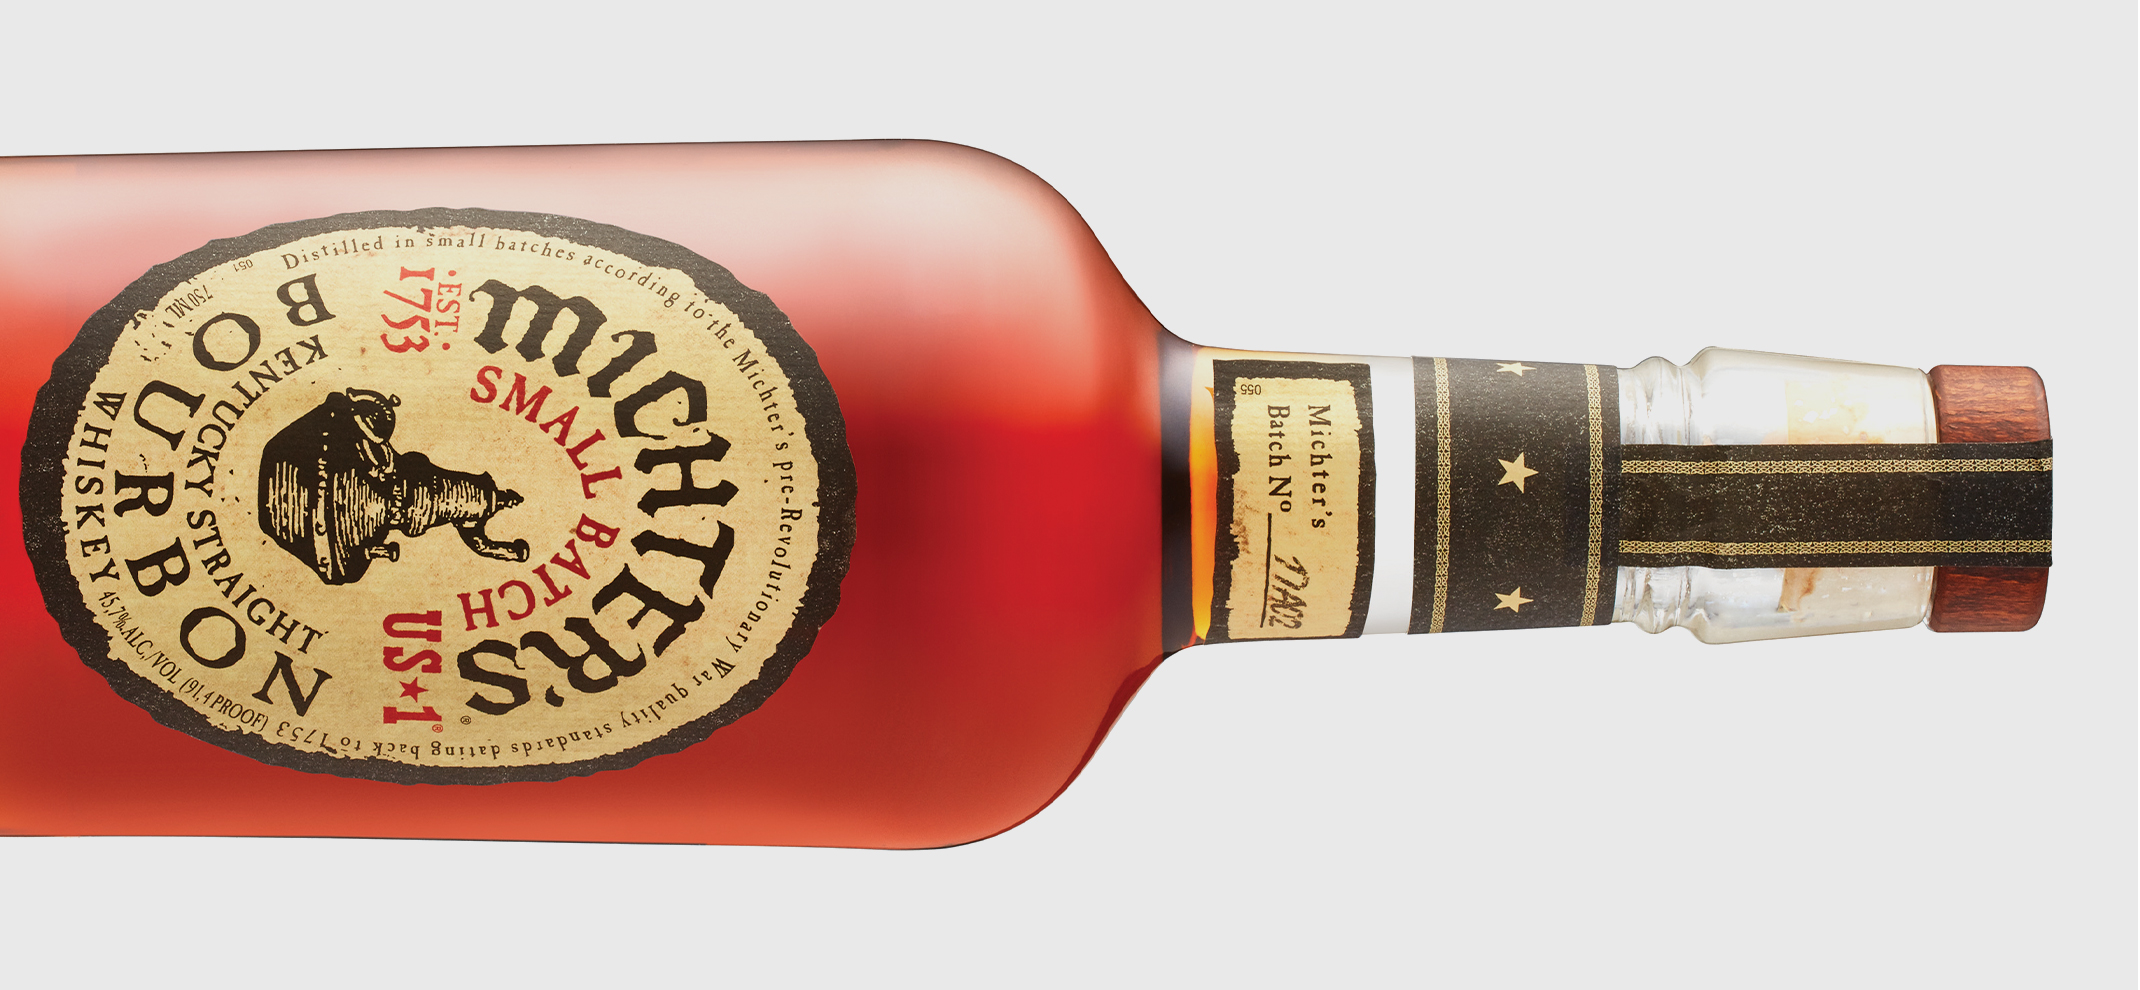 Bourbon du Kentucky Michter's Small Batch